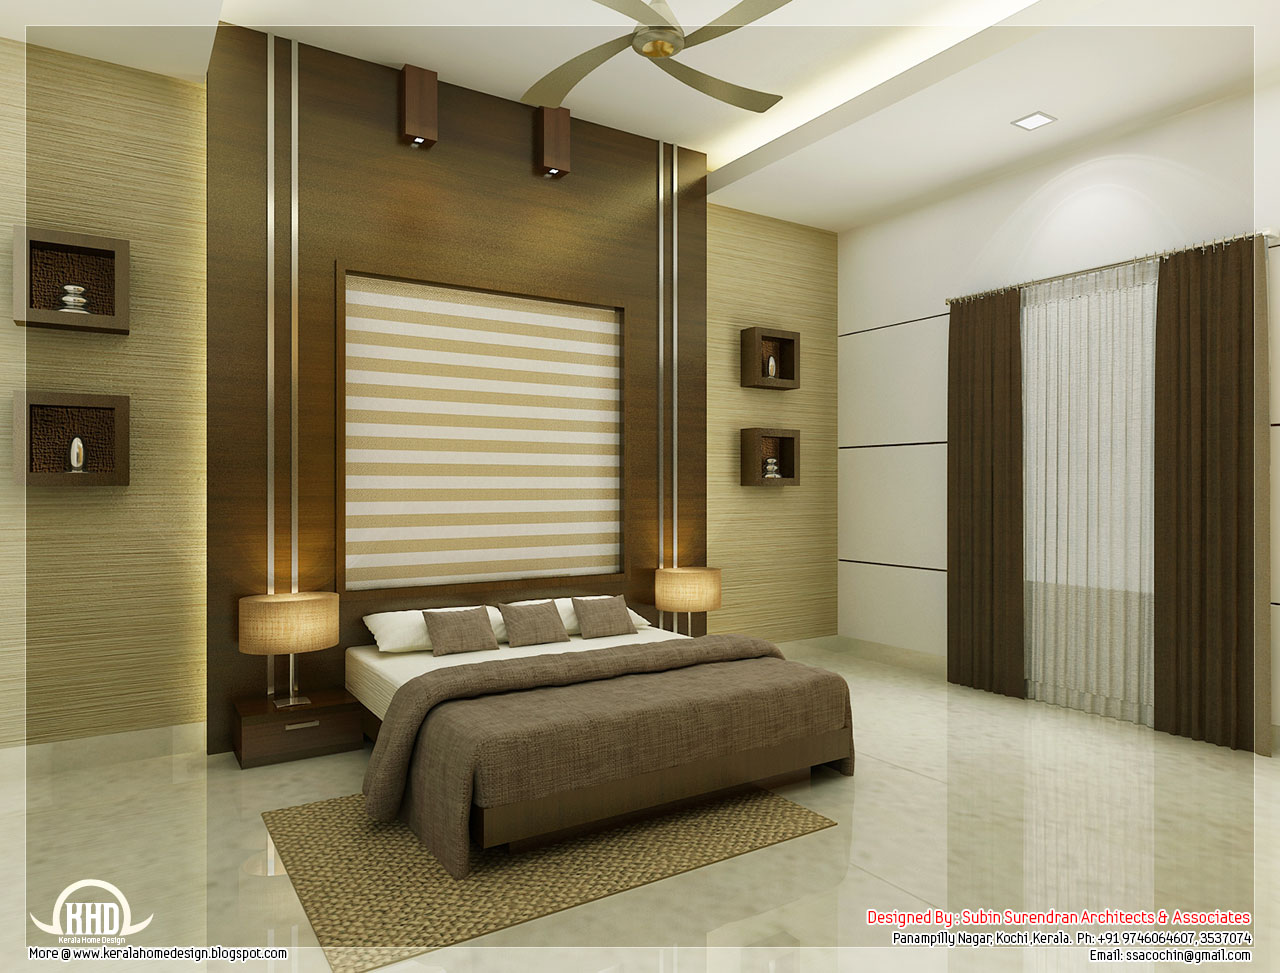 Outstanding Beautiful Interior Design Bedrooms 1280 x 973 · 226 kB · jpeg